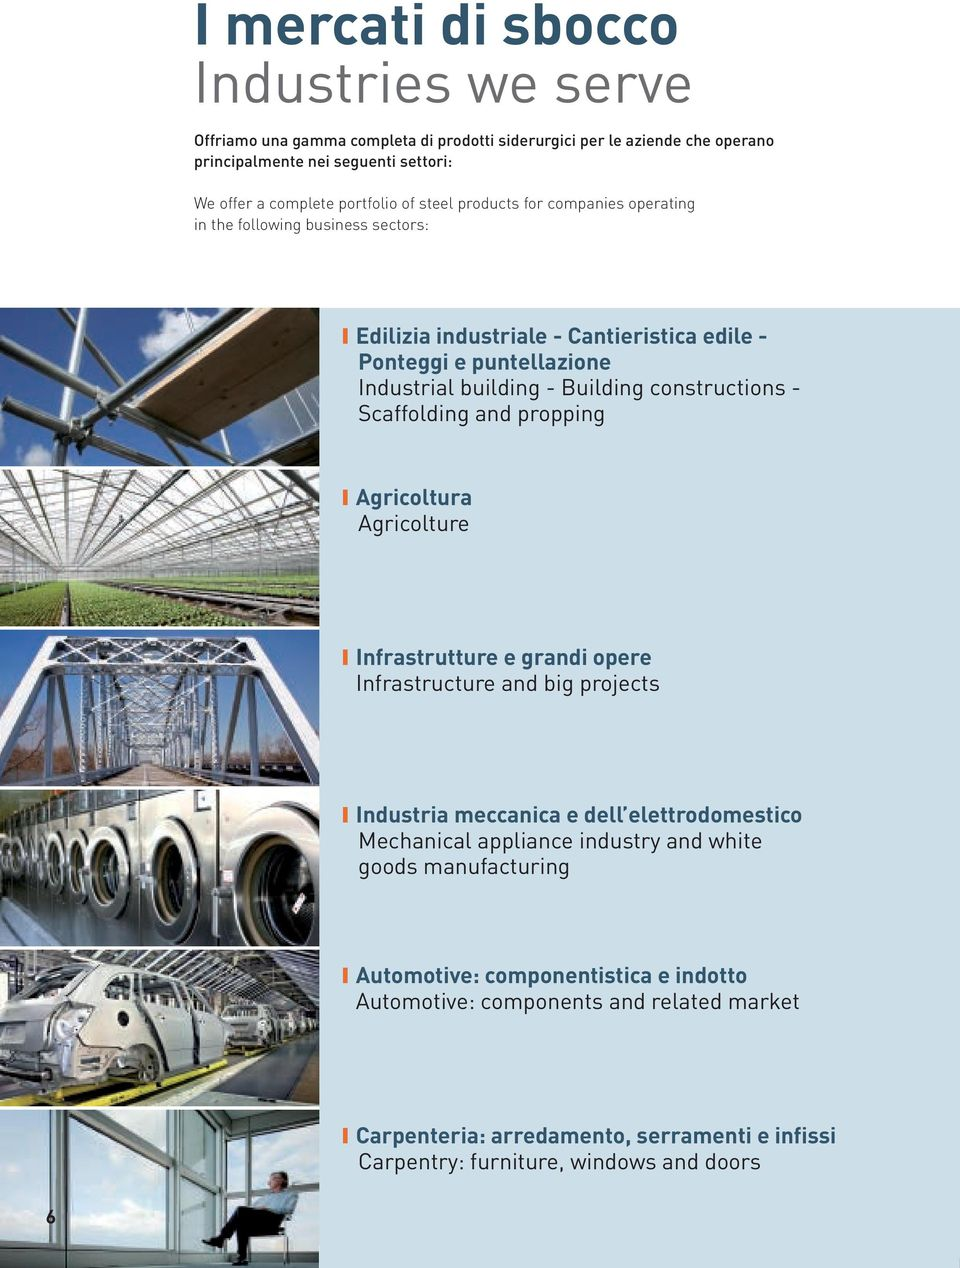 Scaffolding and propping Agricoltura Agricolture Infrastrutture e grandi opere Infrastructure and big projects Industria meccanica e dell elettrodomestico Mechanical appliance industry and